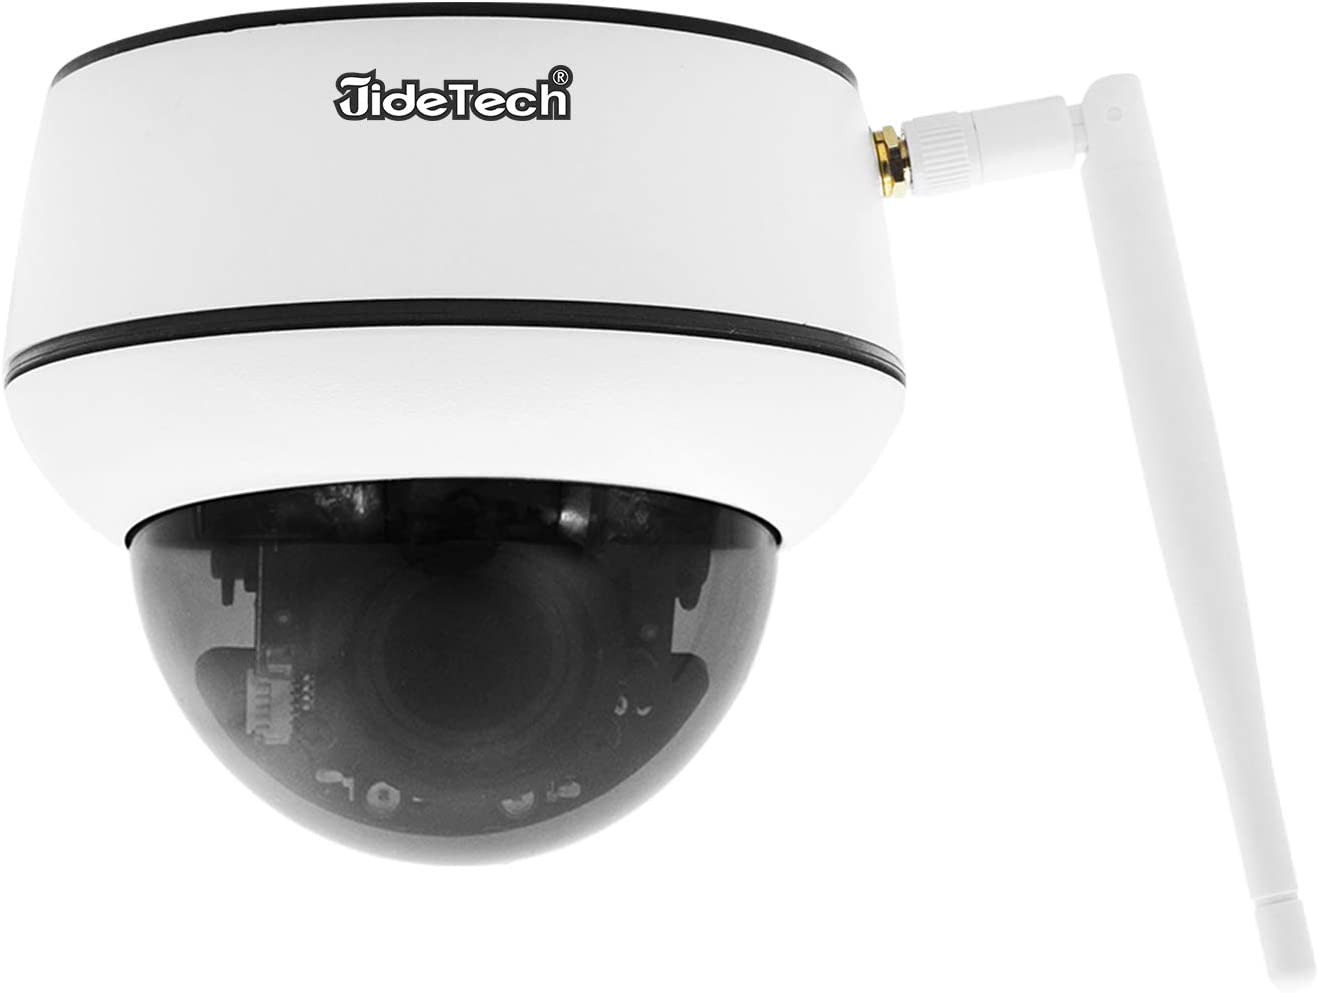 5MP PTZ WiFi IP Camera, 5X Zoom Mini Dome Camera Indoor/Outdoor Security, Wireless Camera with Auto-Tracking / 2-Way Audio / 128G SD Card Slot/Night Vision/ONVIF Support / IP66 Waterproof